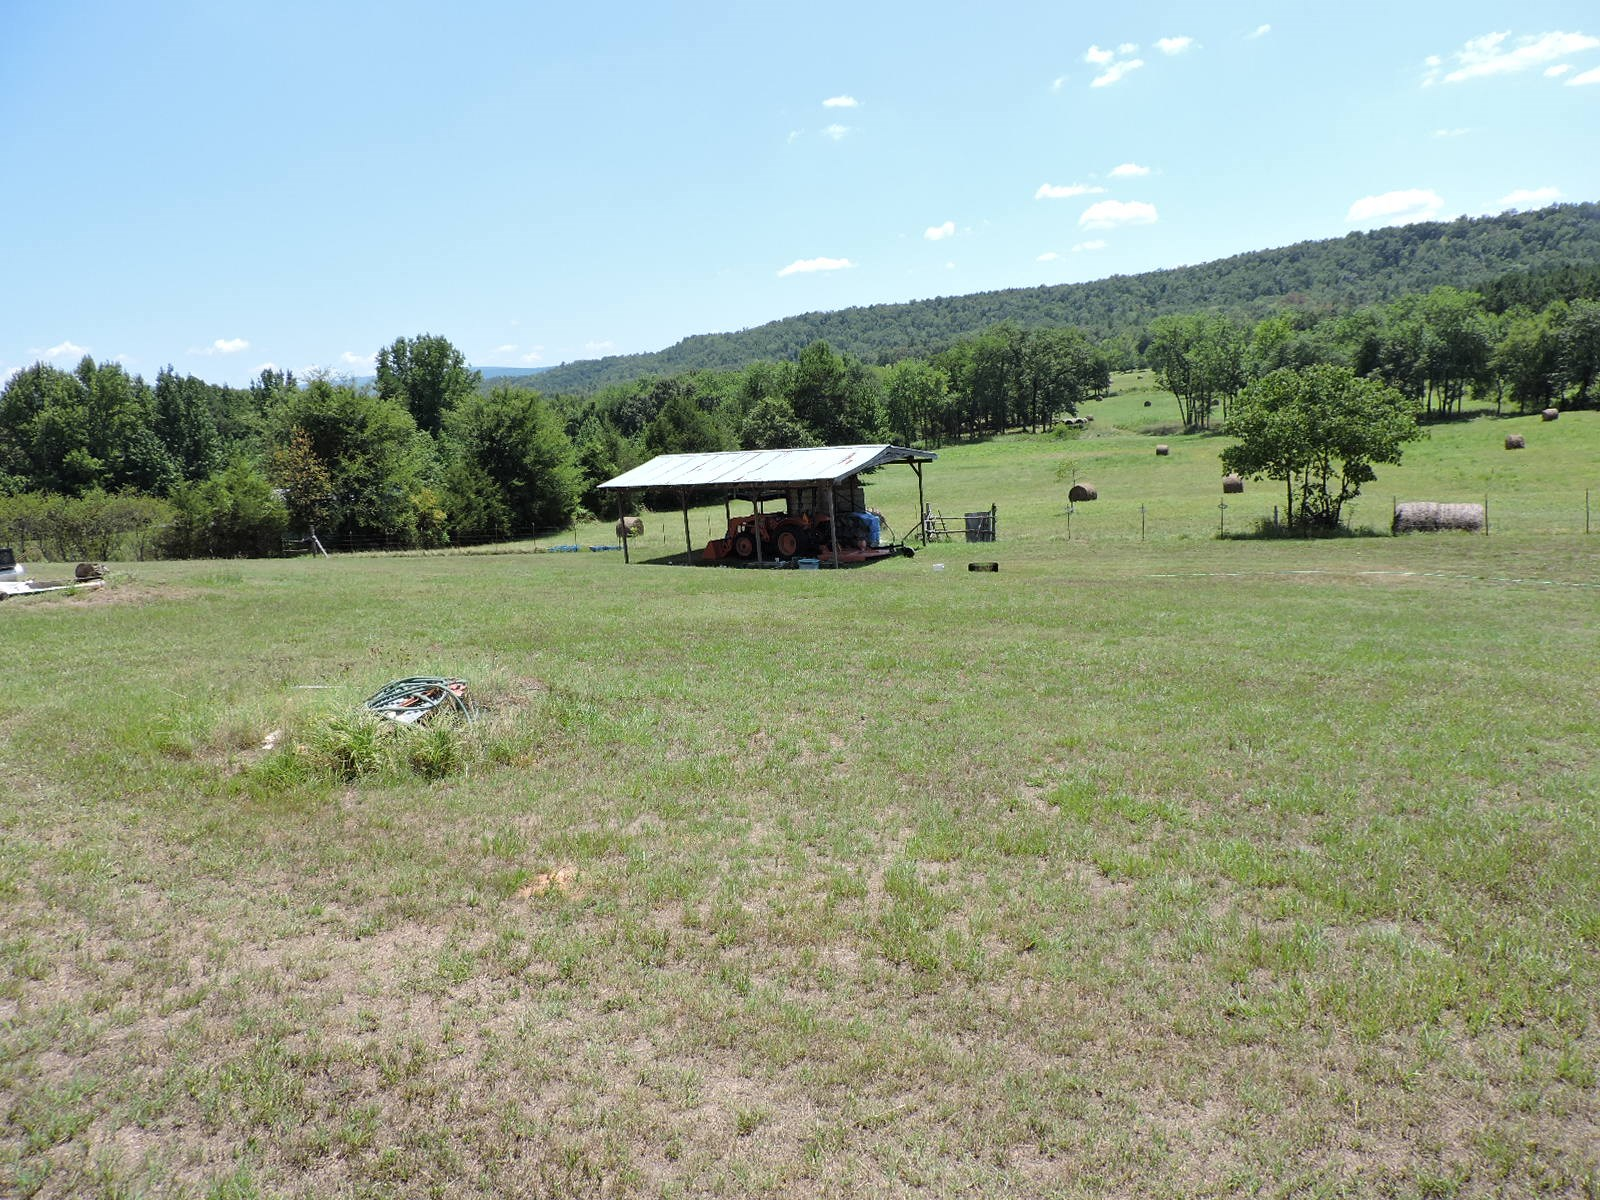 90 Acre Farm with Older Mobile Home